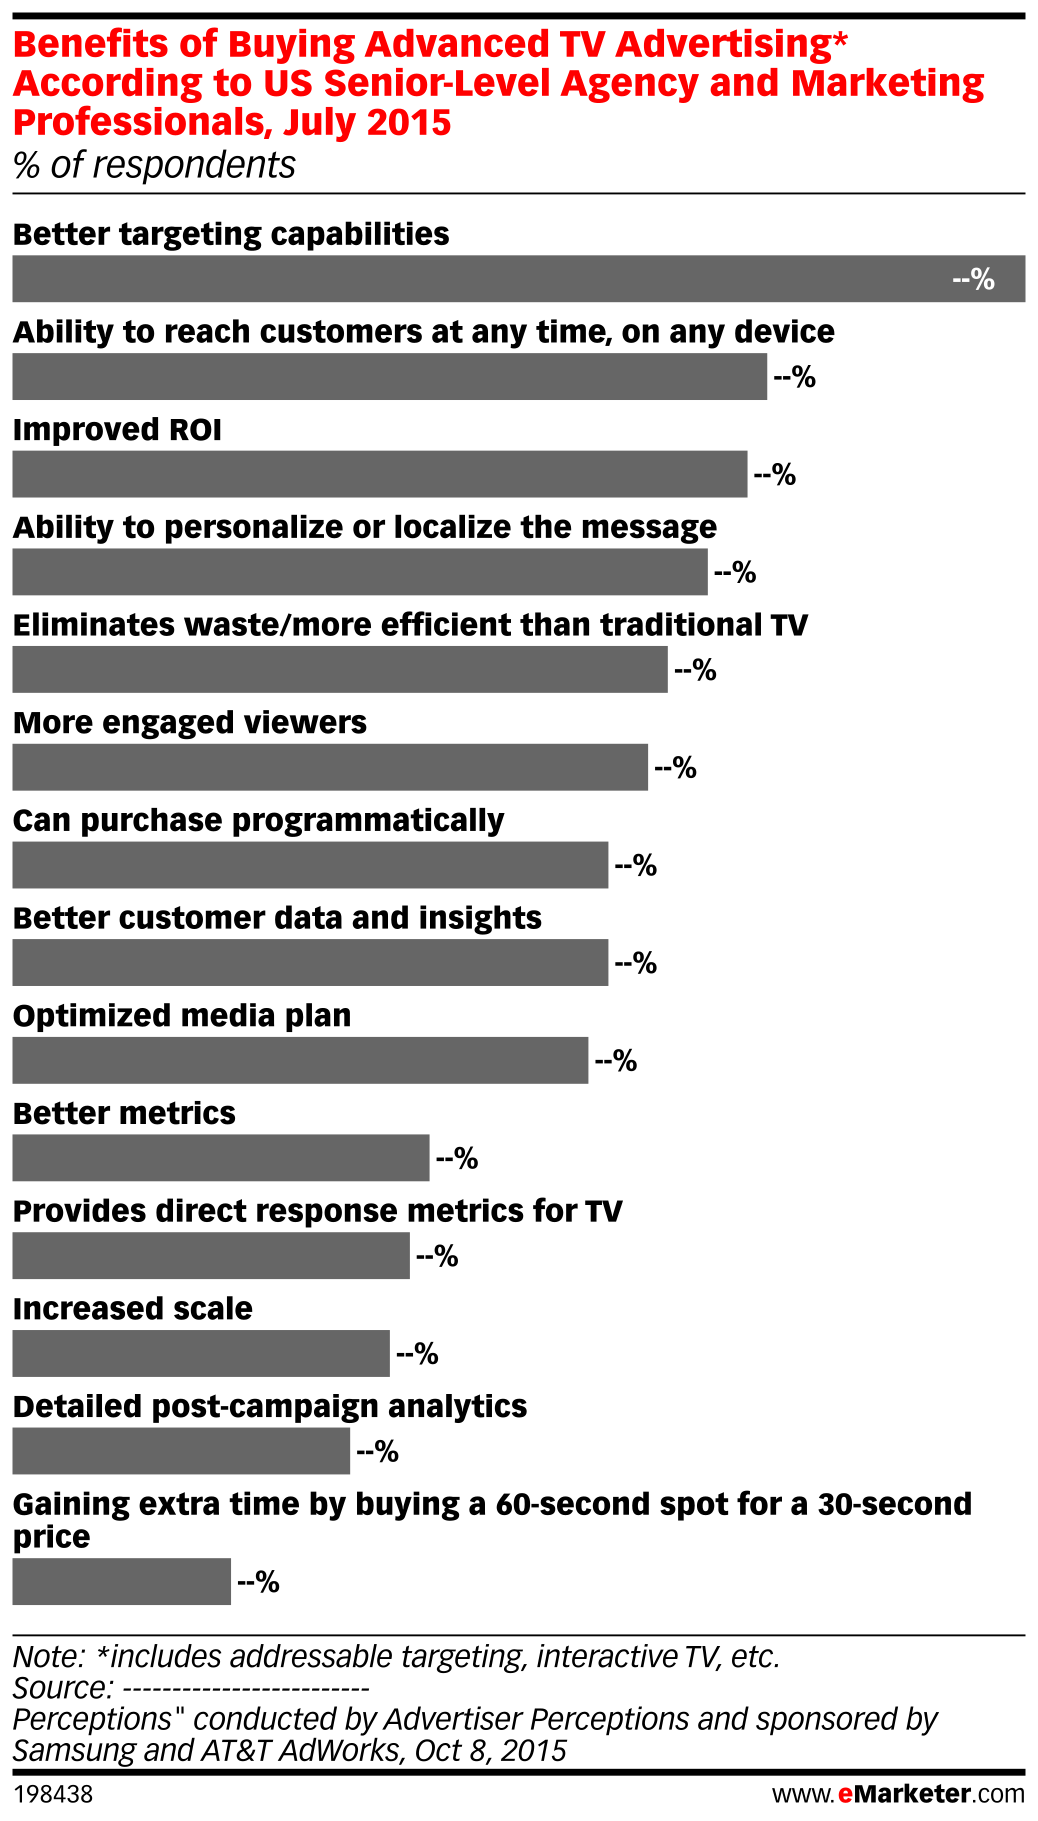 Benefits of Buying Advanced TV Advertising* According to US Senior-Level Agency and Marketing Professionals, July 2015 (% of respondents)